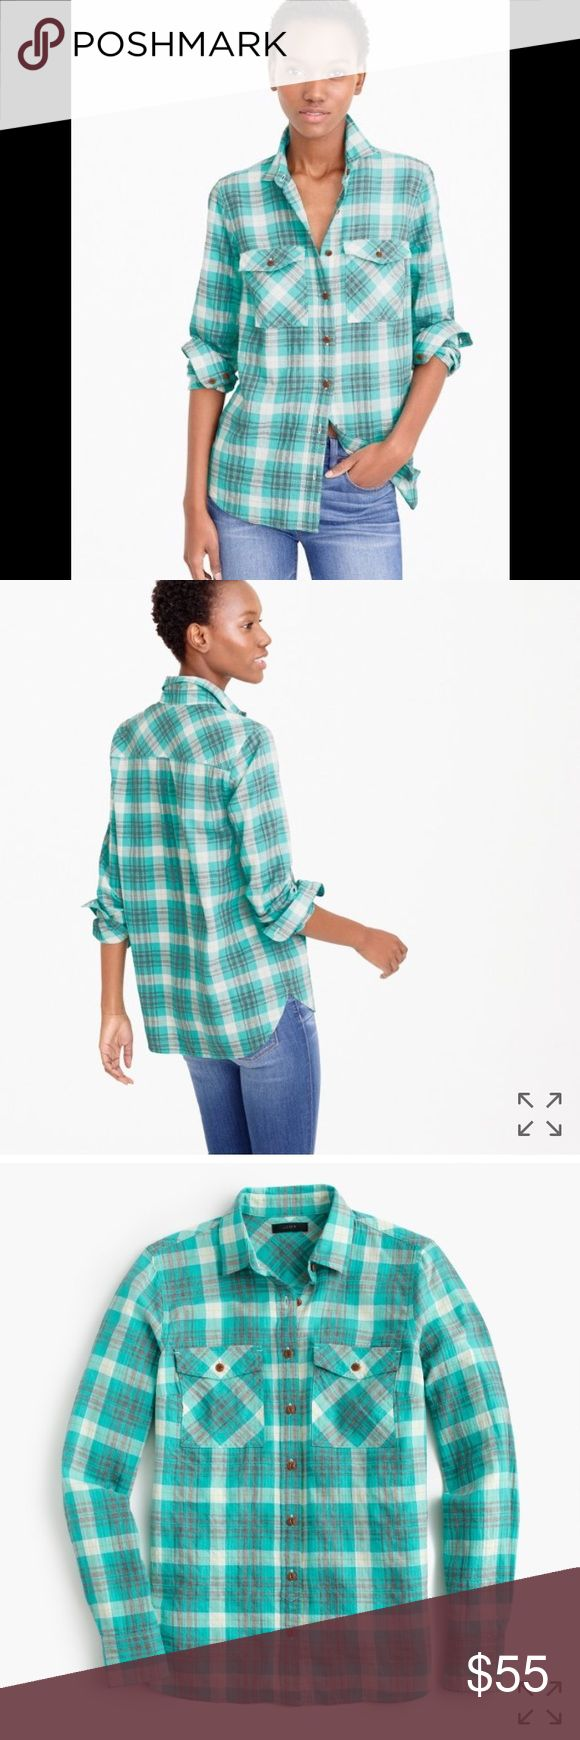 J. Crew Emerald Plaid Boyfriend Shirt Slightly more relaxed than the boy shirt, the J. Crew Boyfriend shirt is the perfect everyday piece for your wardrobe. Soft 99% cotton, 1% elastane. Fits TTS. Excellent condition,worn once. Measurements available upon request. NO TRADES! J. Crew Tops Button Down Shirts